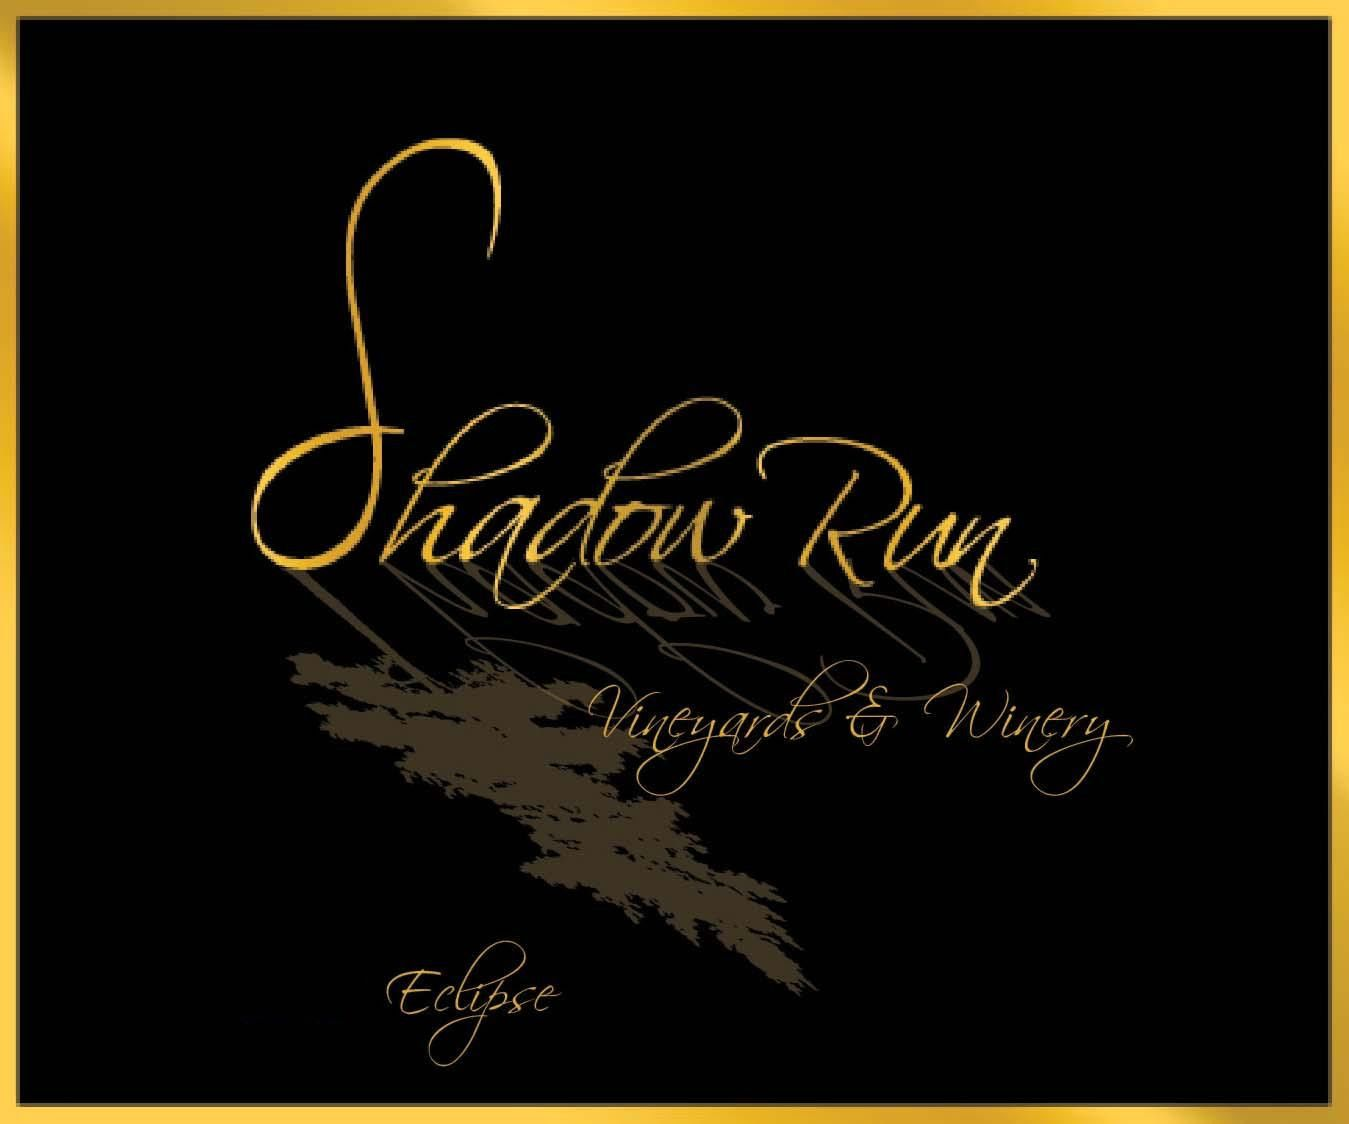 Shadow Run Ranch & Winery Eclipse Petite Sirah 2011 Front Label